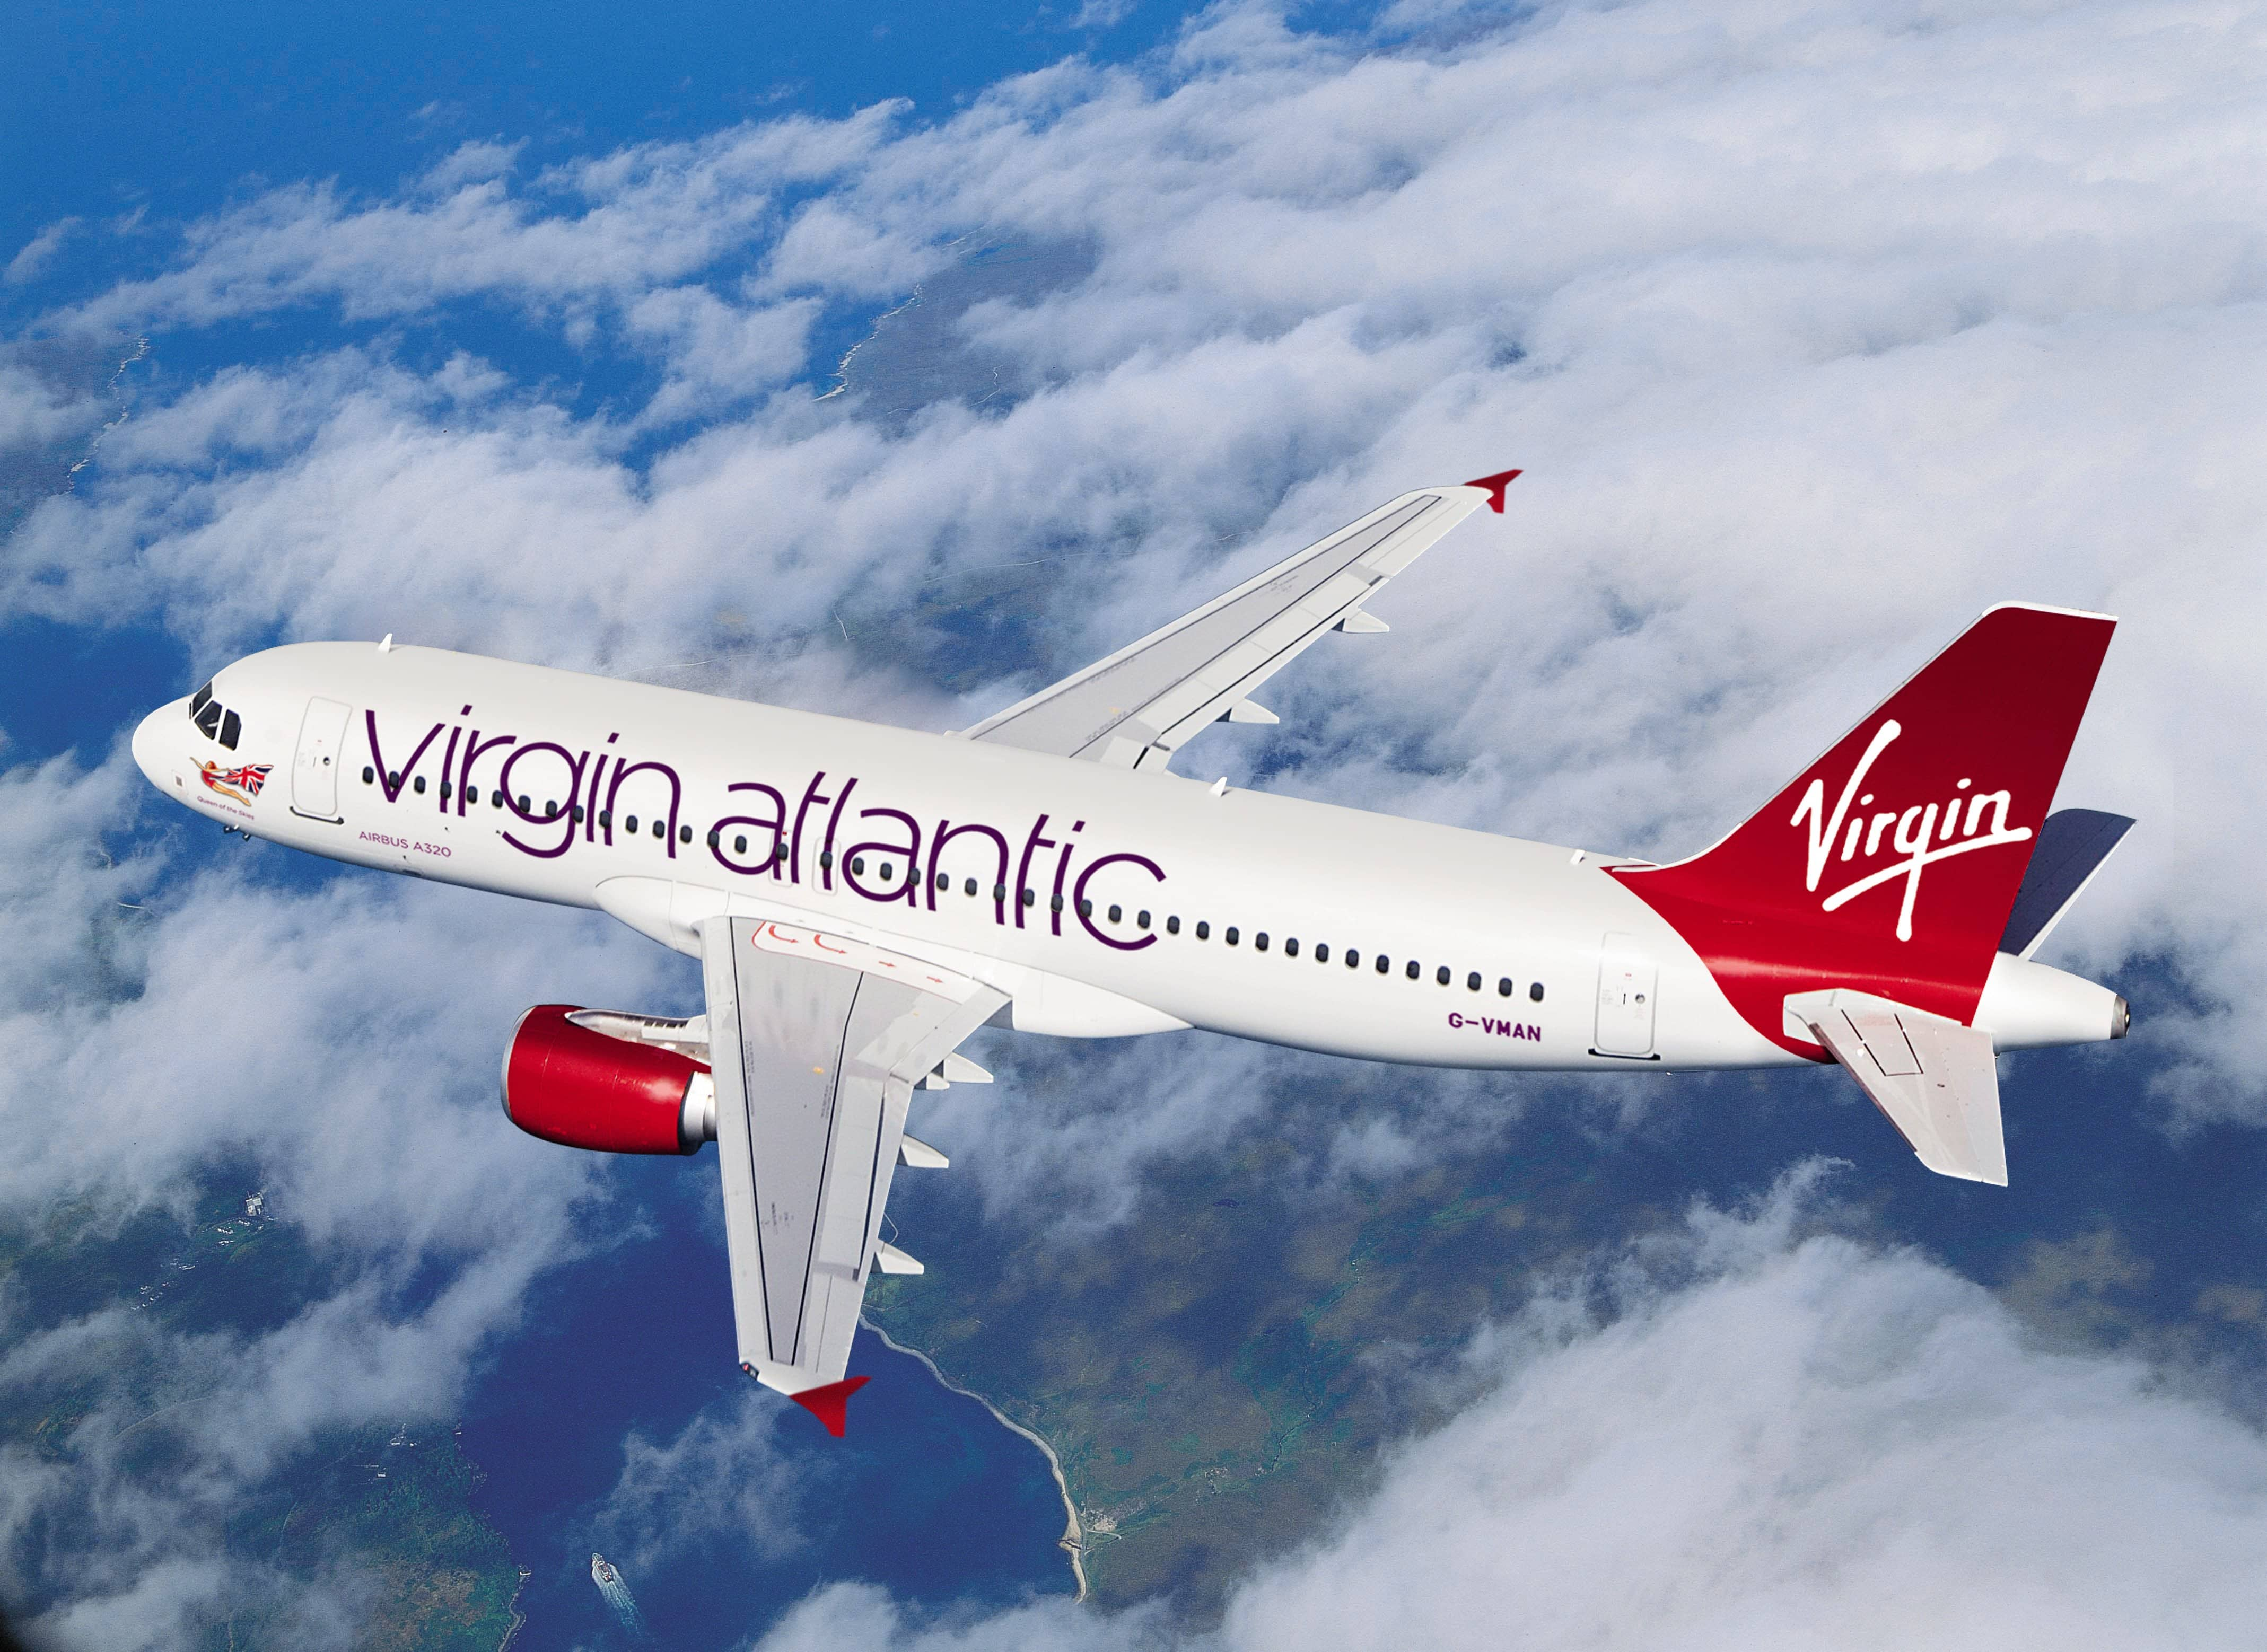 Virgin Atlantic Promo Code, Sale Fares & Flying Club Promotions (2018) 7